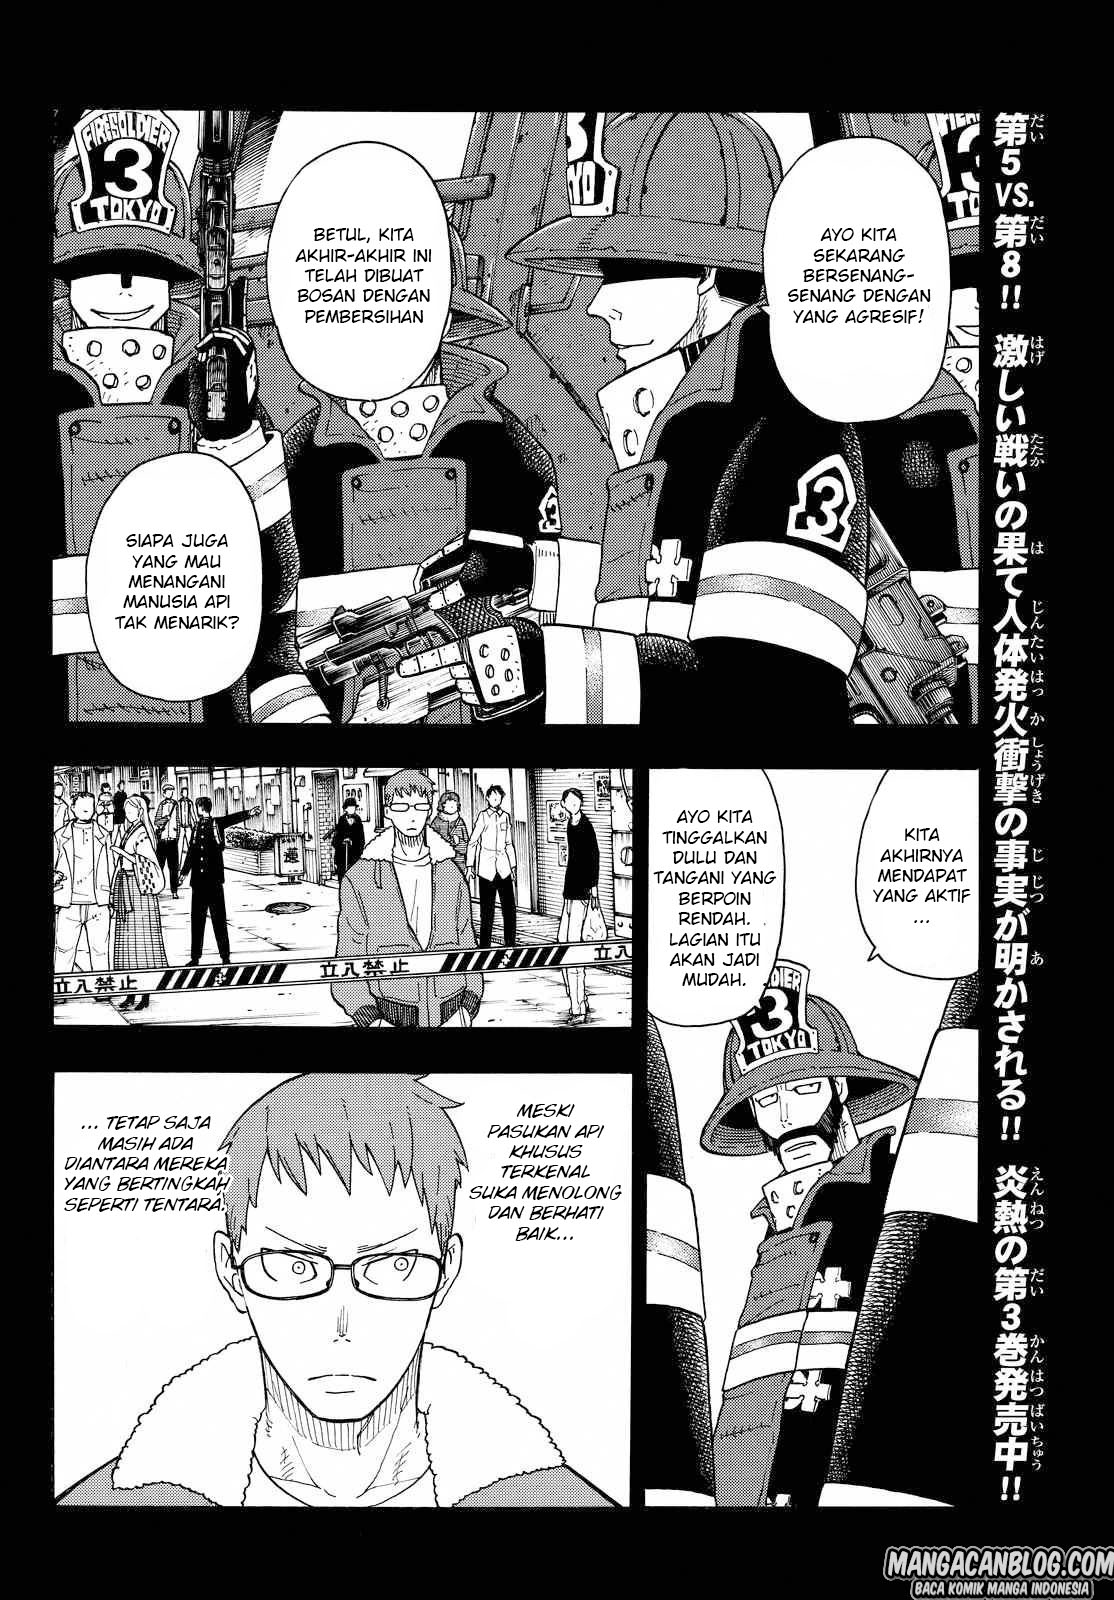 Komik fire brigade of flames 037 - chapter 37 38 Indonesia fire brigade of flames 037 - chapter 37 Terbaru 4|Baca Manga Komik Indonesia